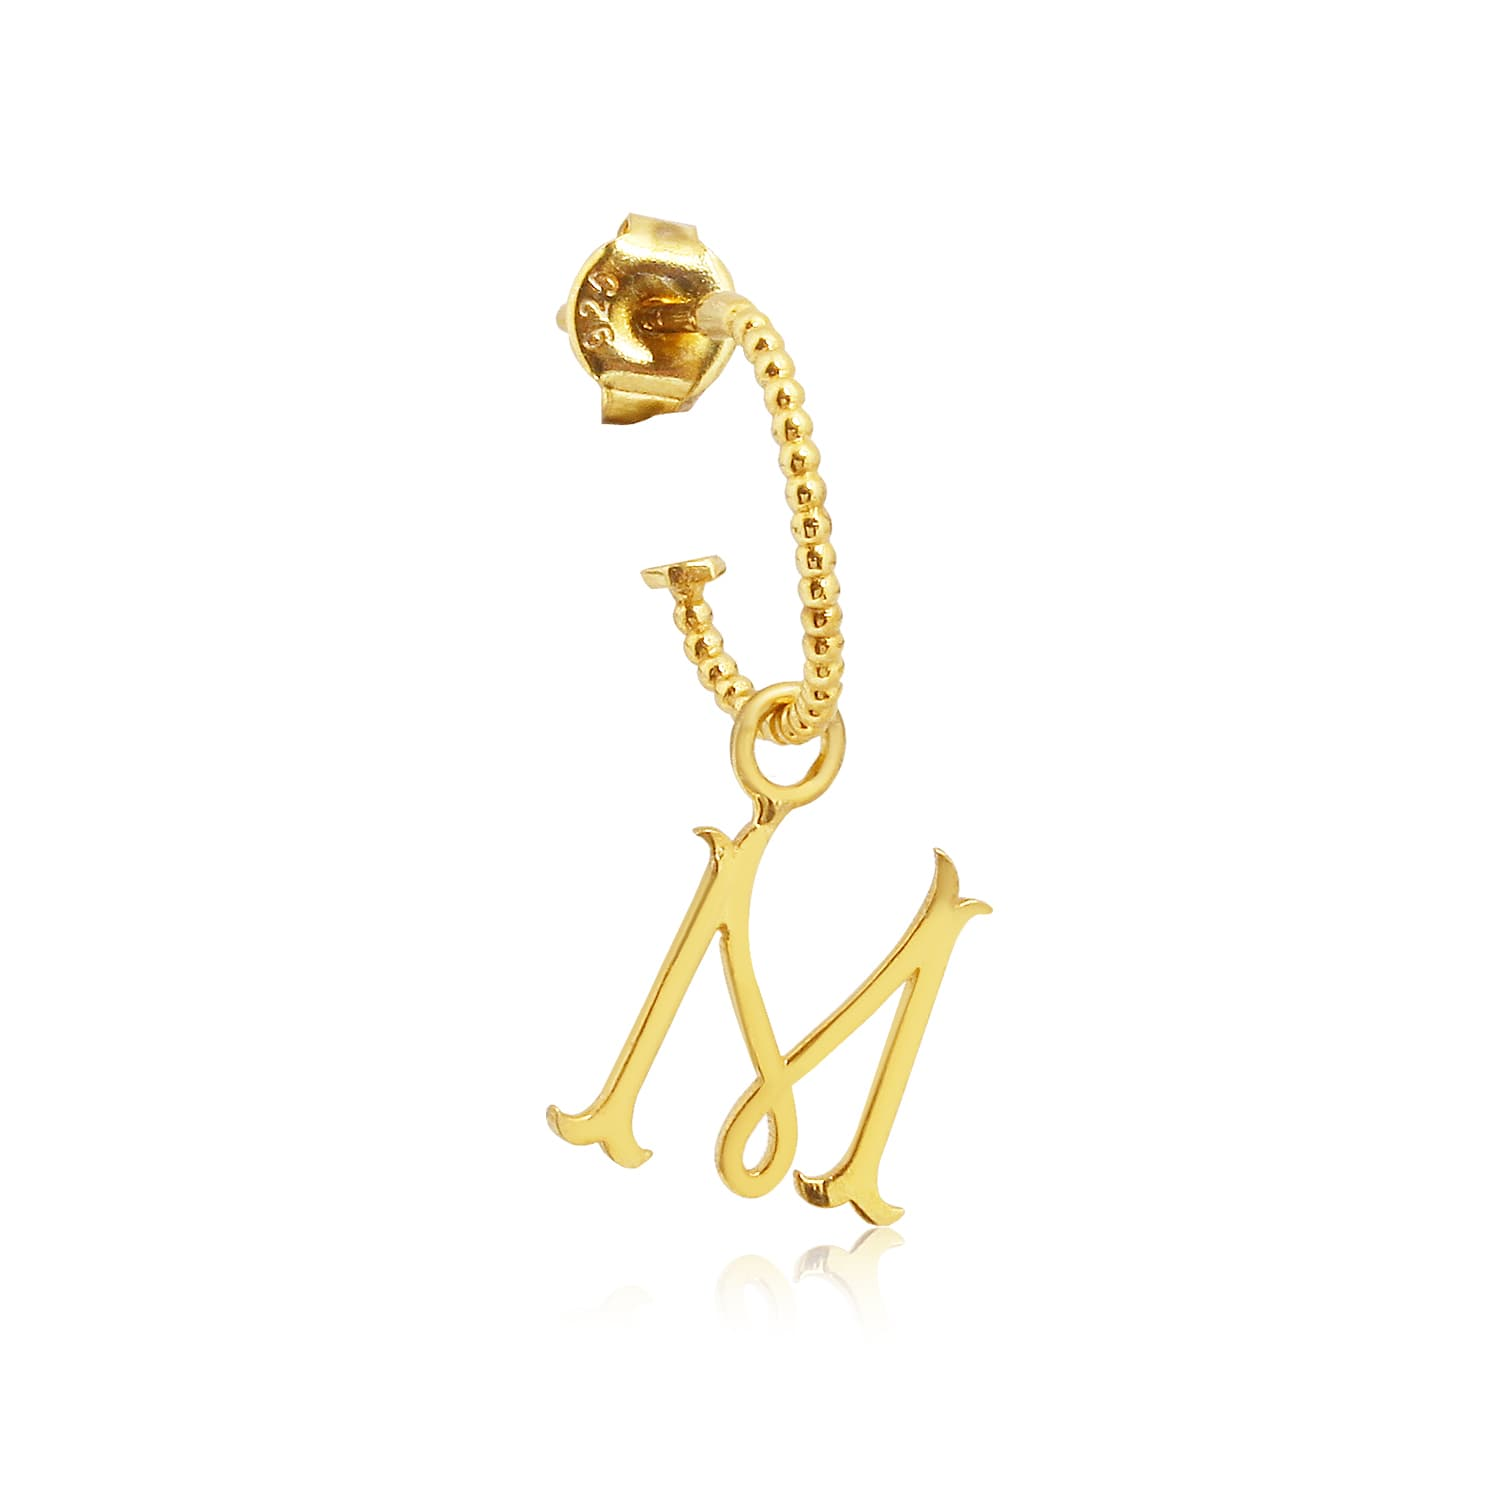 Real gold plated earring models with letters